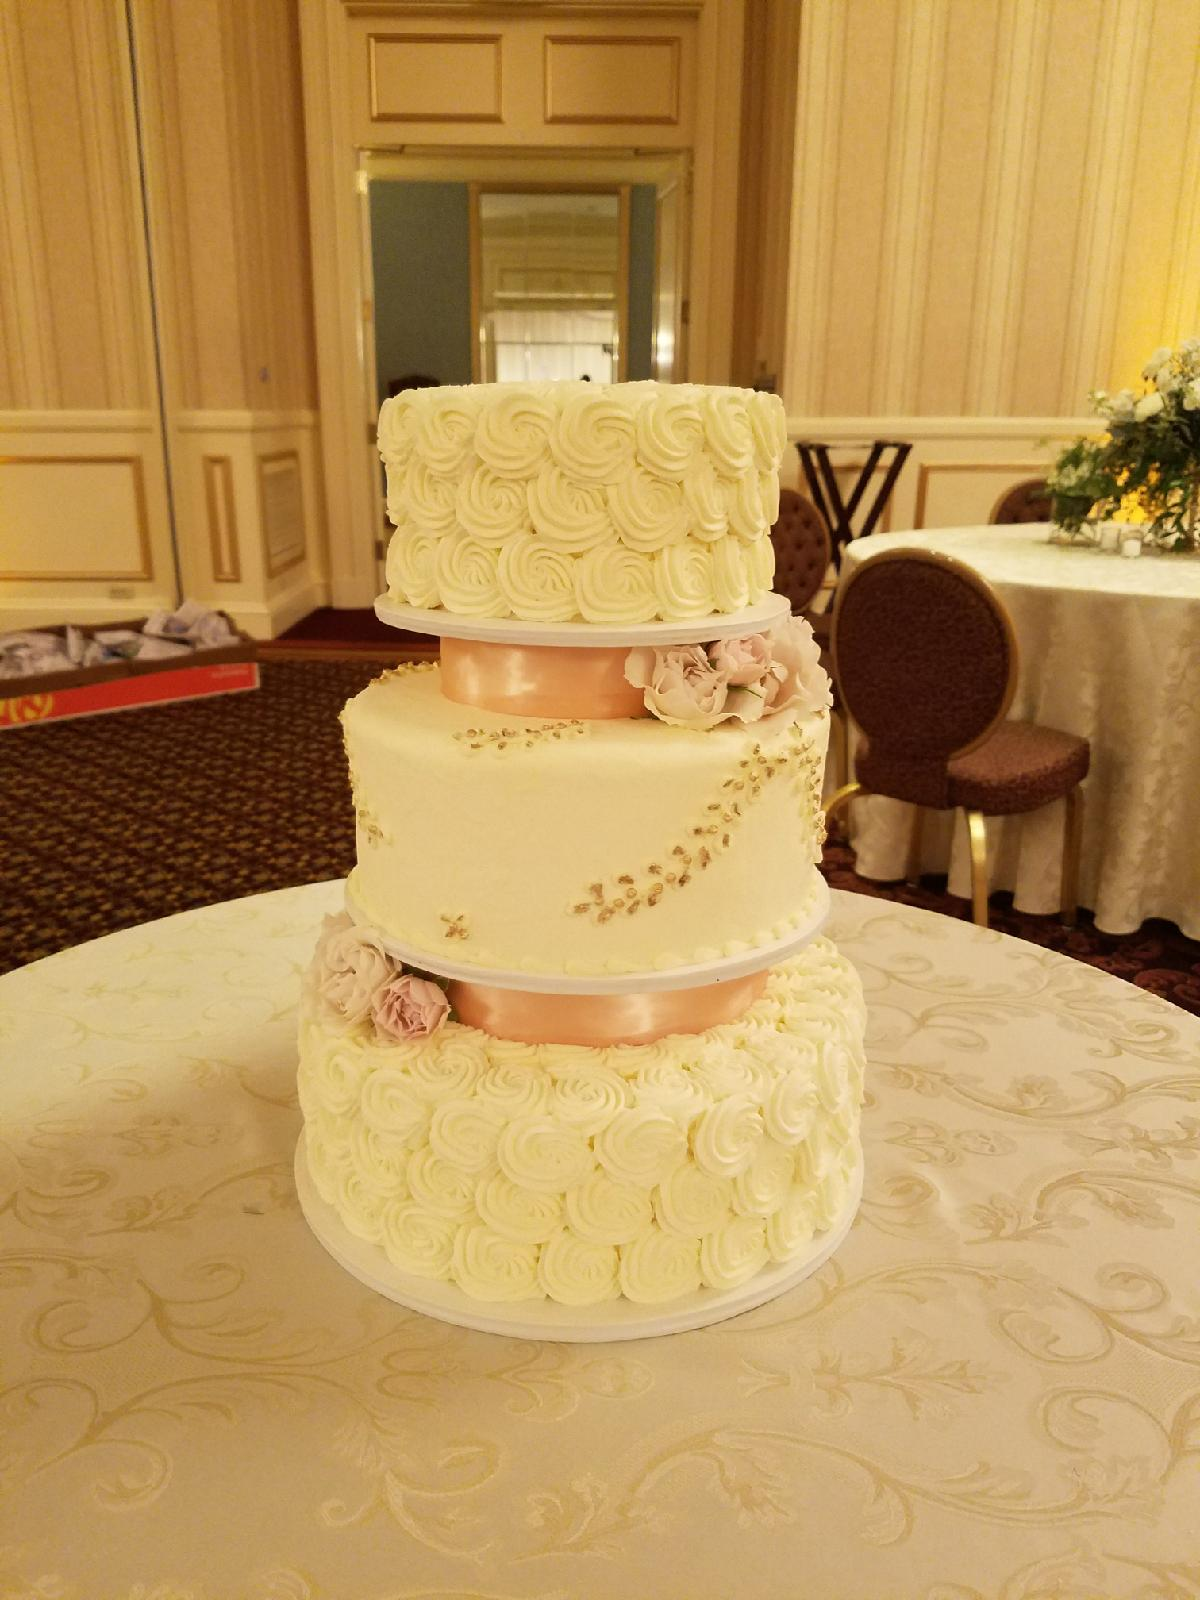 Buttercream Cakes Desserts - Frosted Wedding Cakes